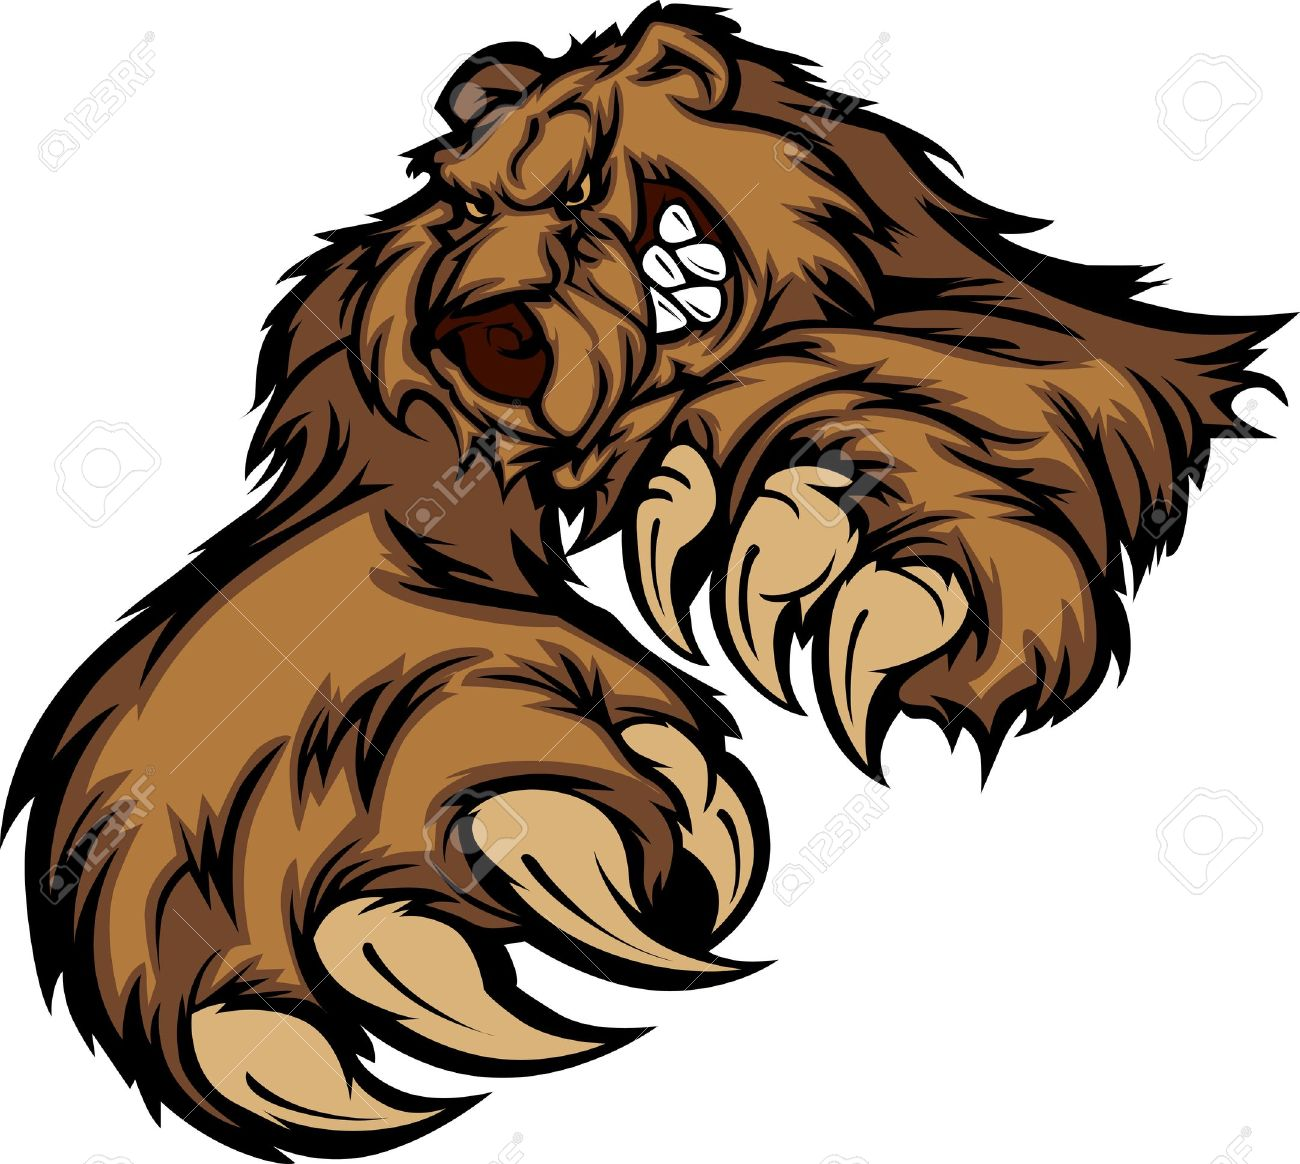 962 Grizzly Bear free clipart.